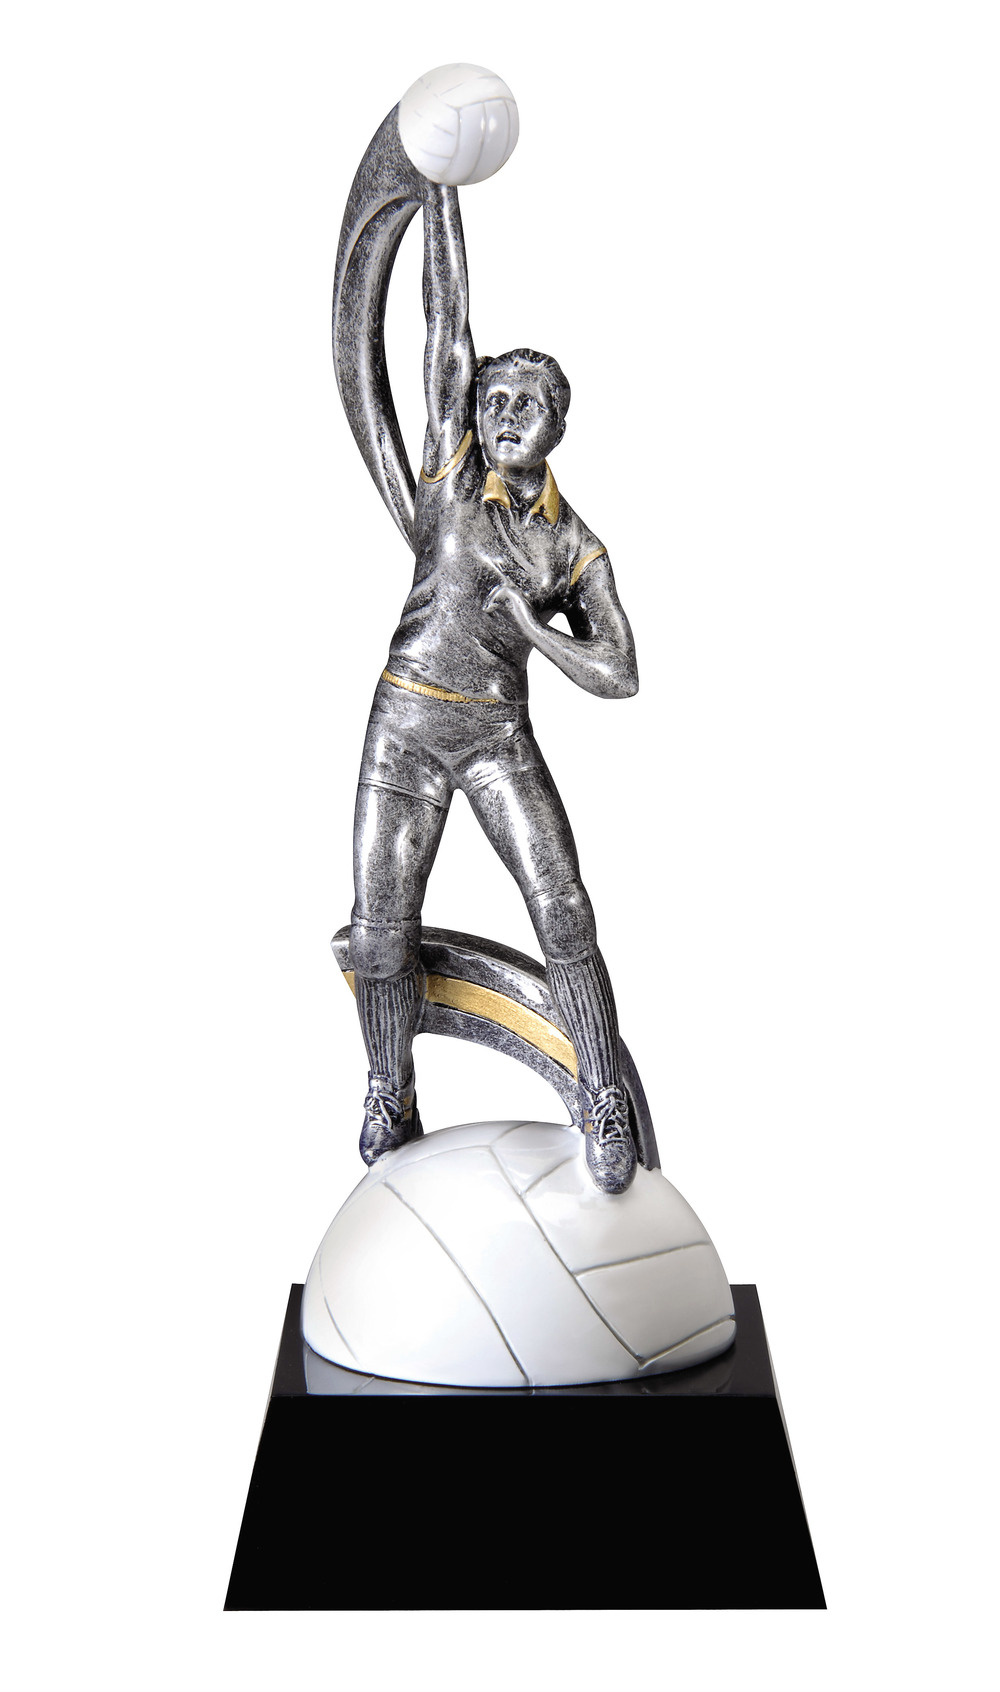 "Volleyball, Female -   Small - MX726 - 7.25"" tall"